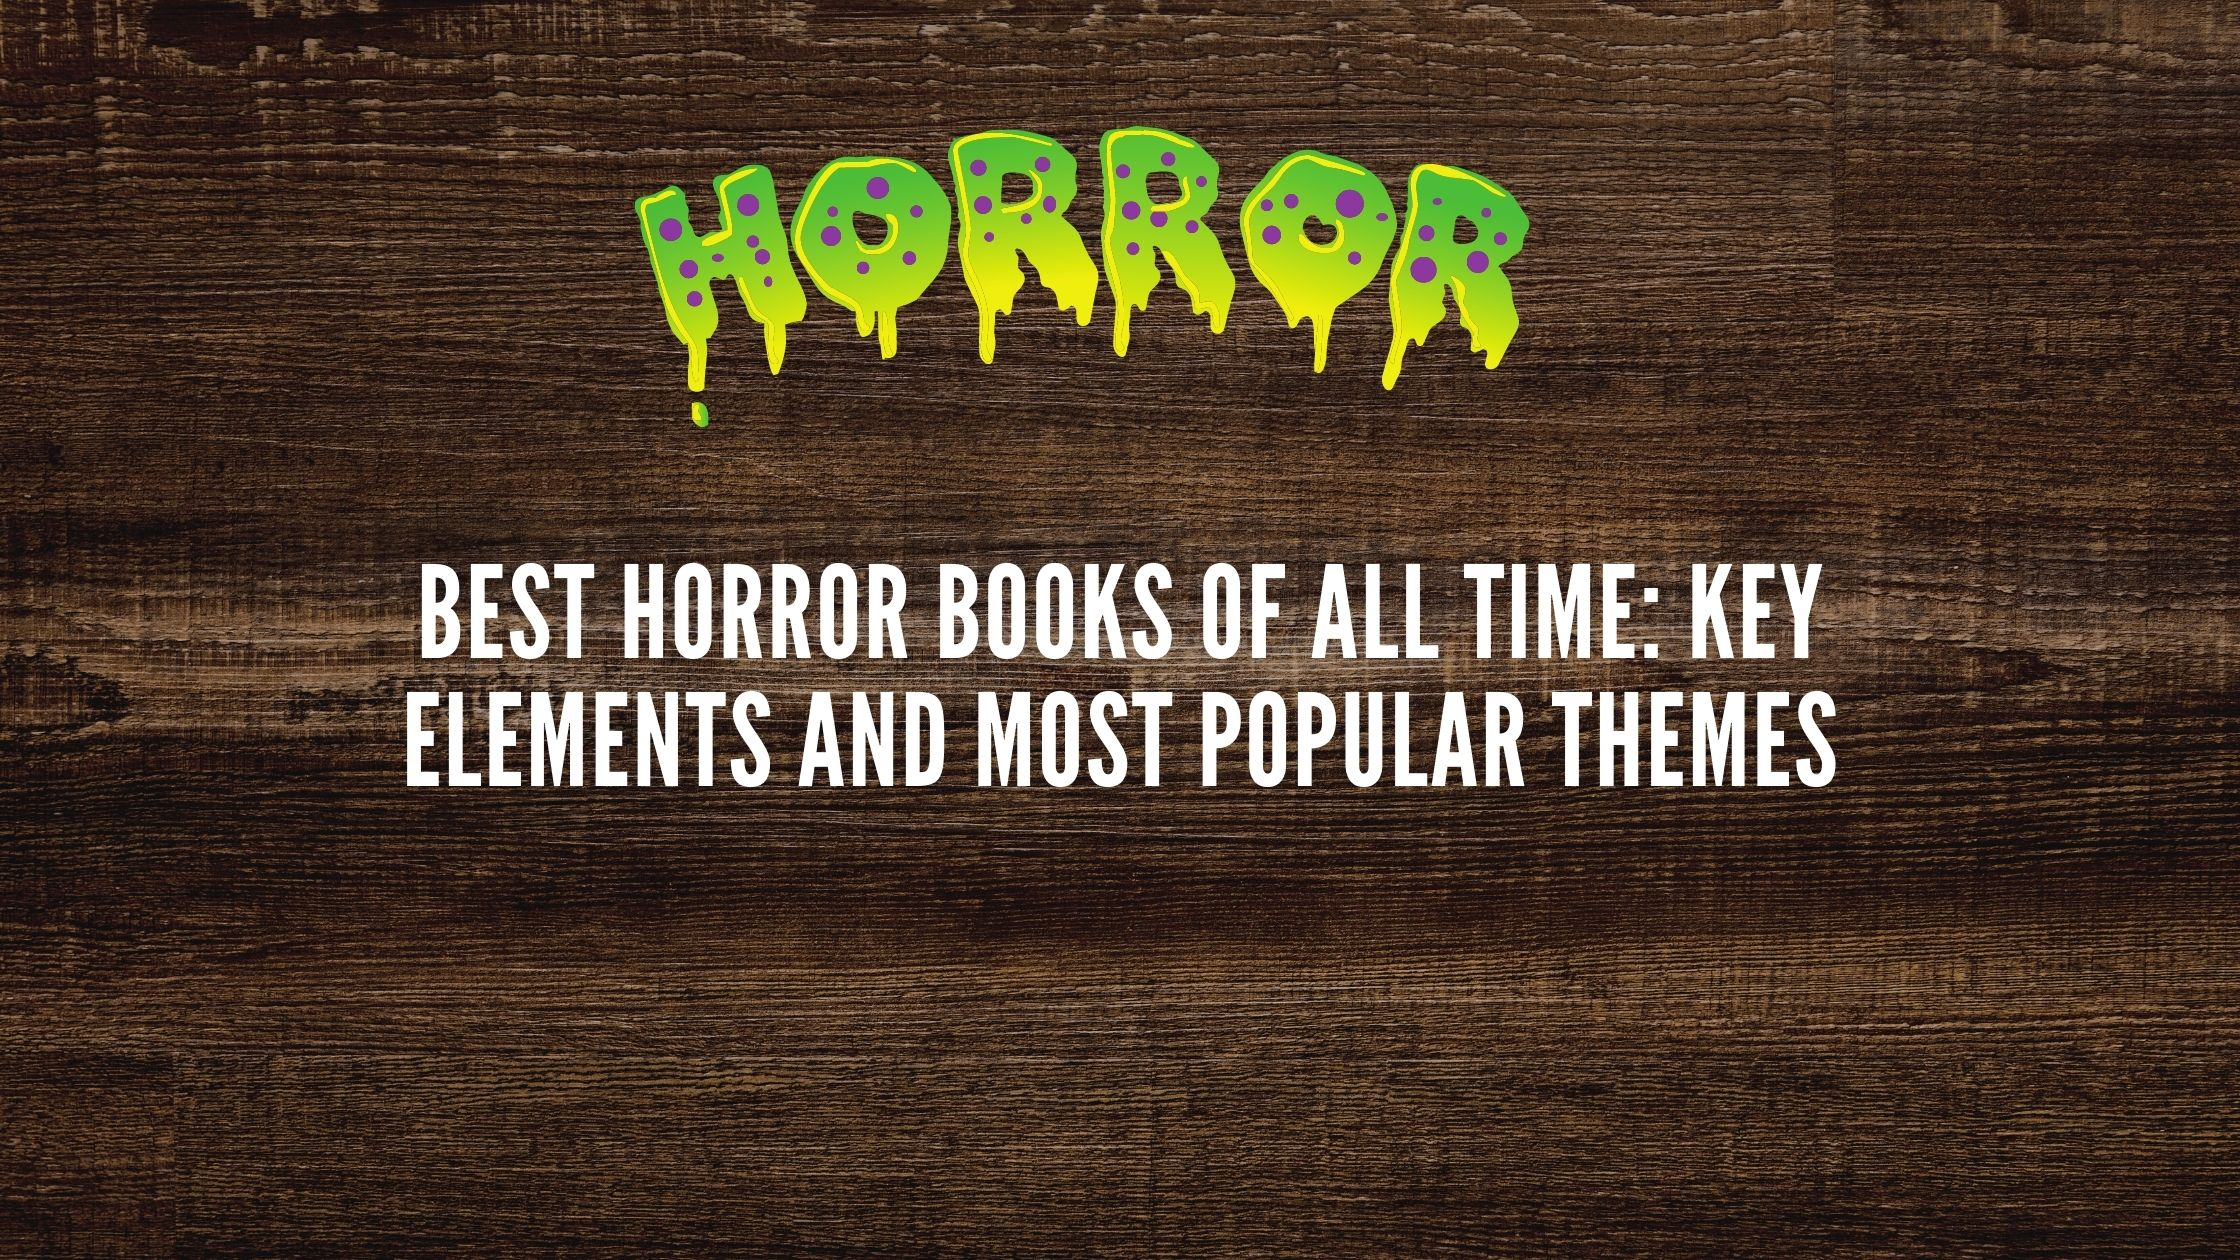 Best Horror Books of All Time_ Key Elements and Most Popular Themes